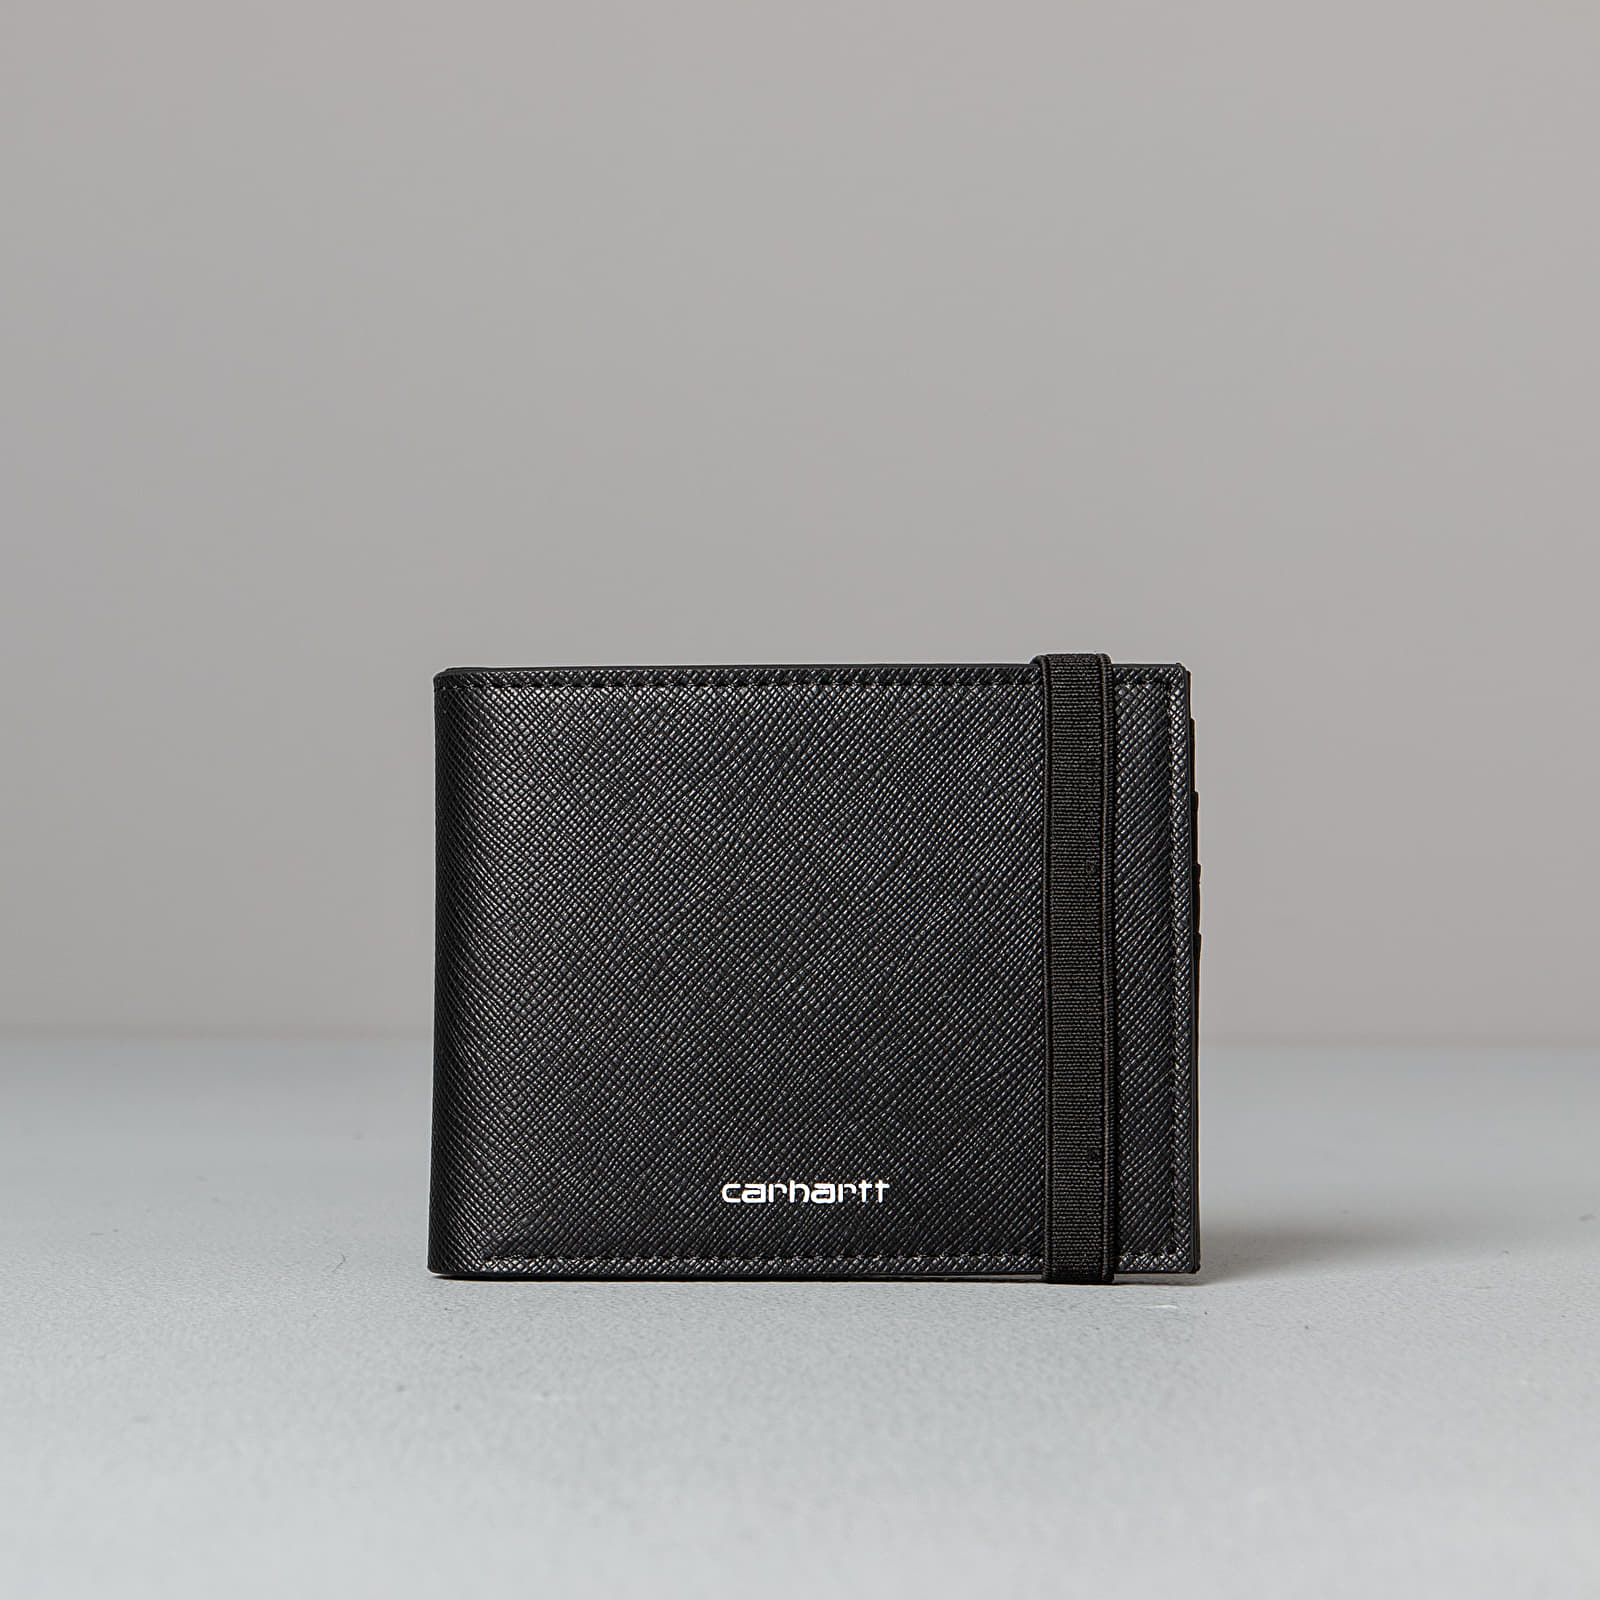 Carhartt WIP Coated Billfold Wallet